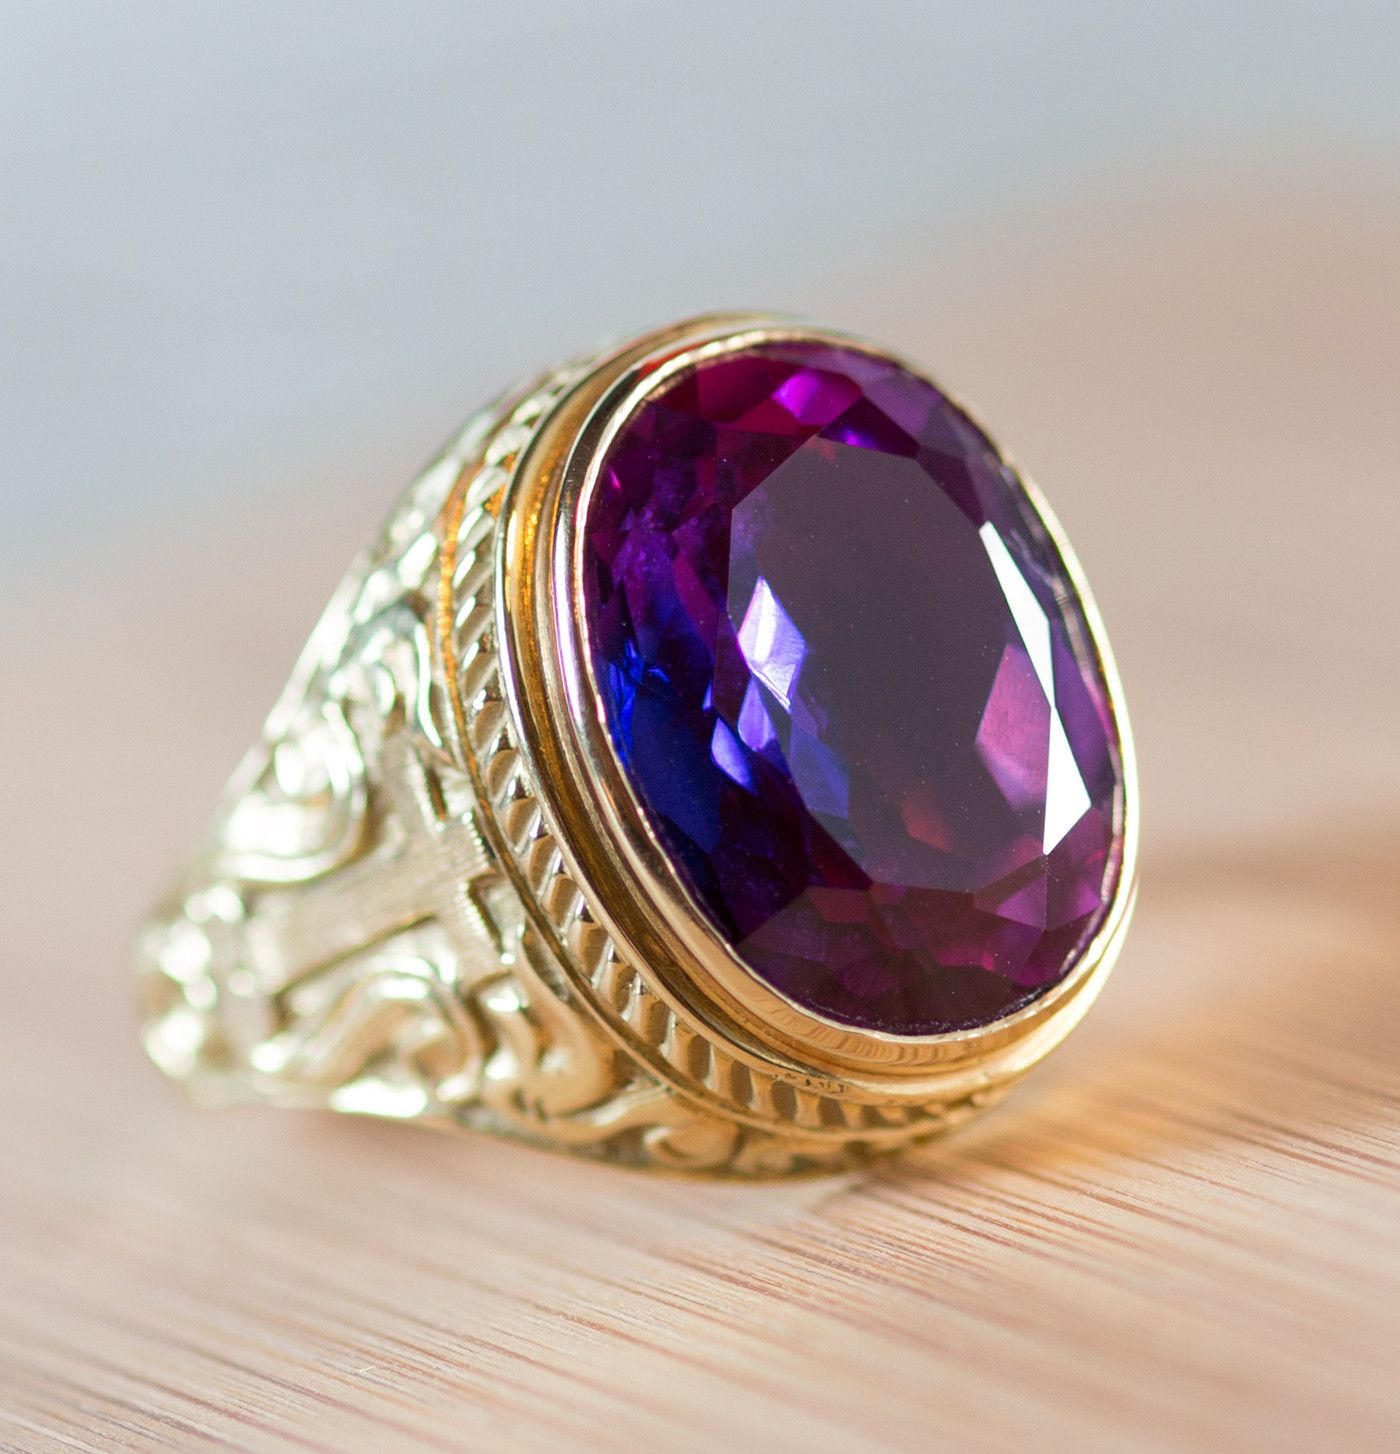 Bishop S Ring 18k Gold With Amethyst Clergy Garmets